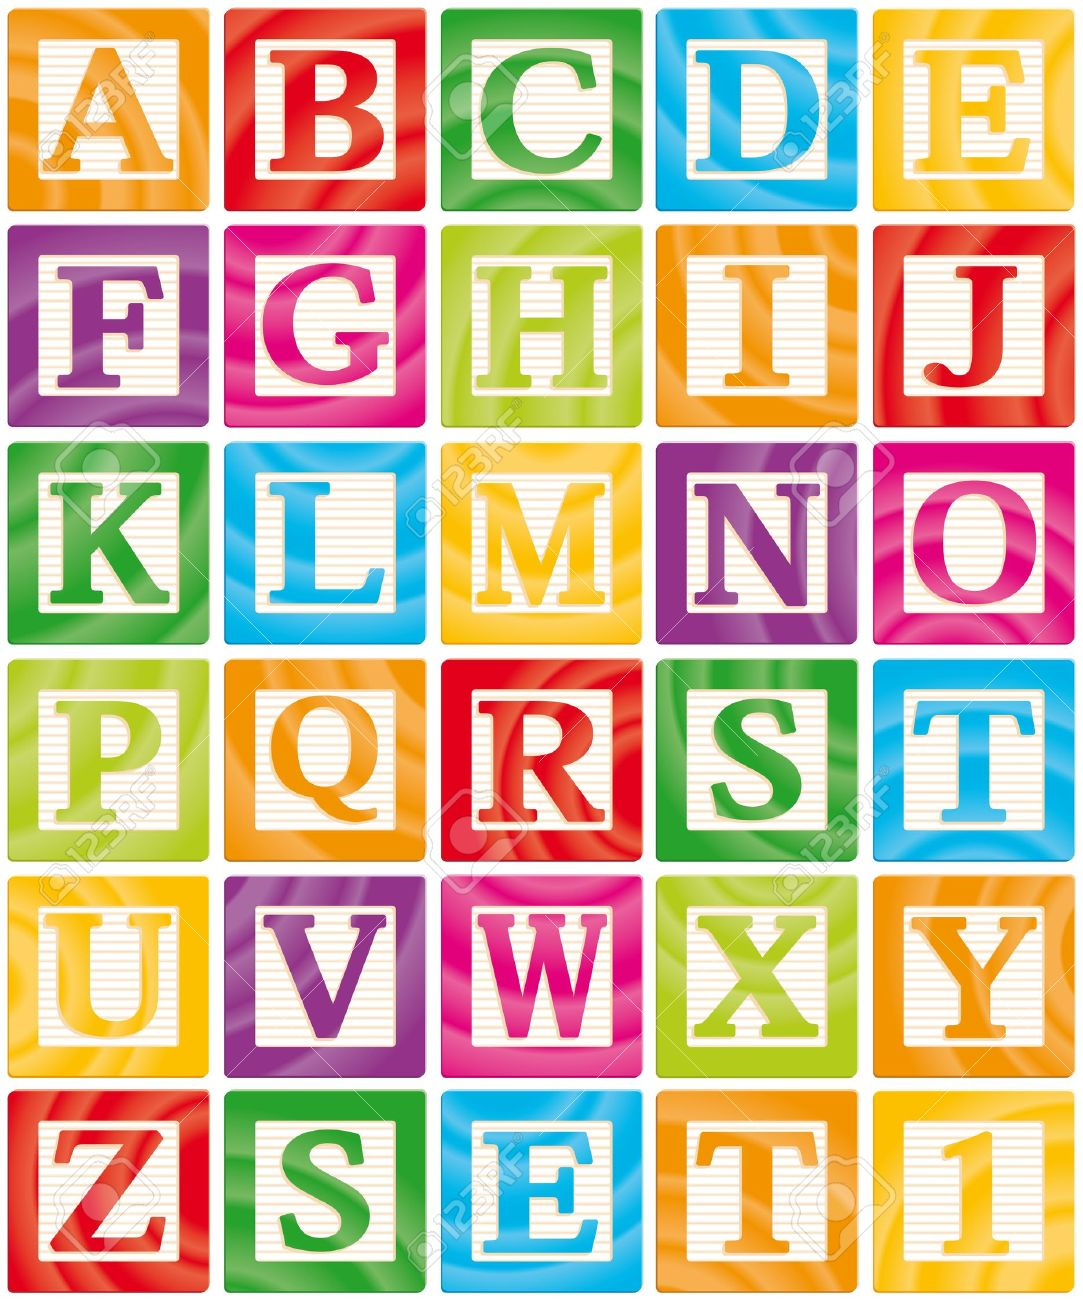 Vector Baby Blocks Set 1 of 3 - Capital Letters Alphabet Stock Vector - 11102368